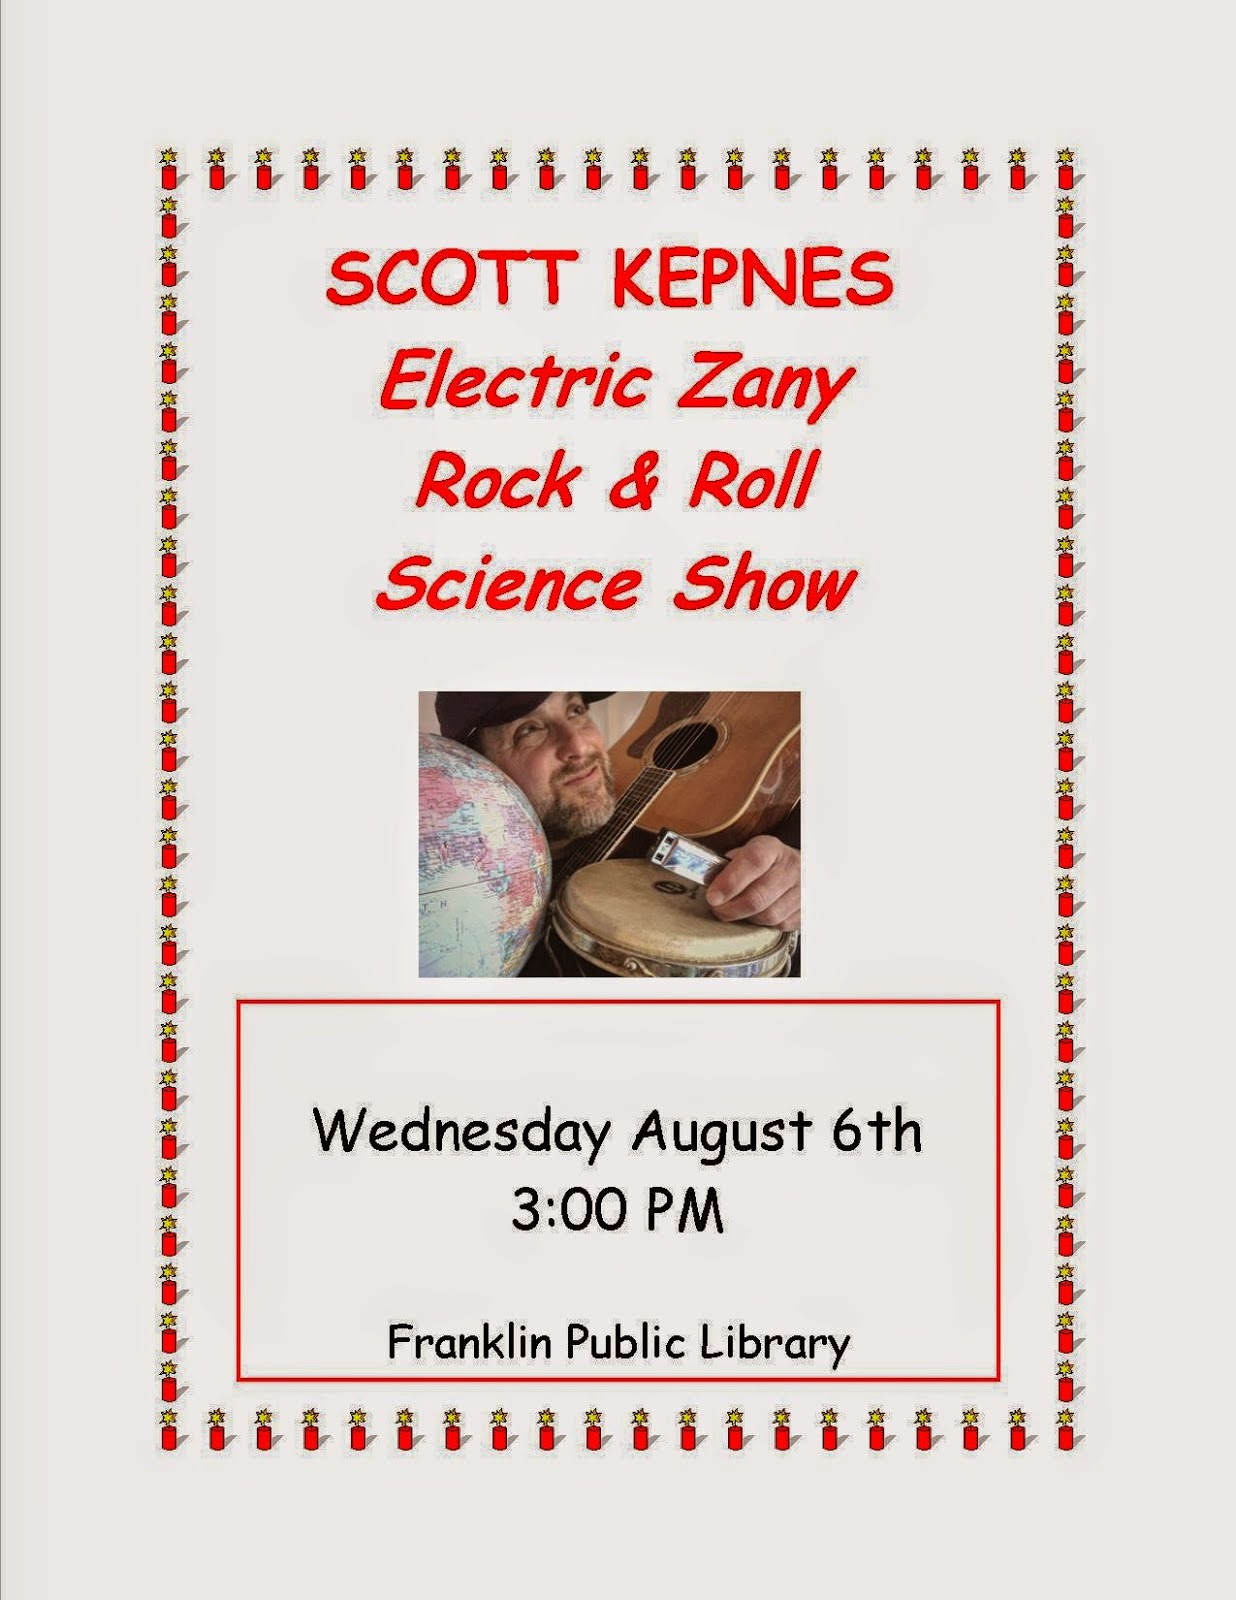 Electric Zany Rock & Roll Science Show